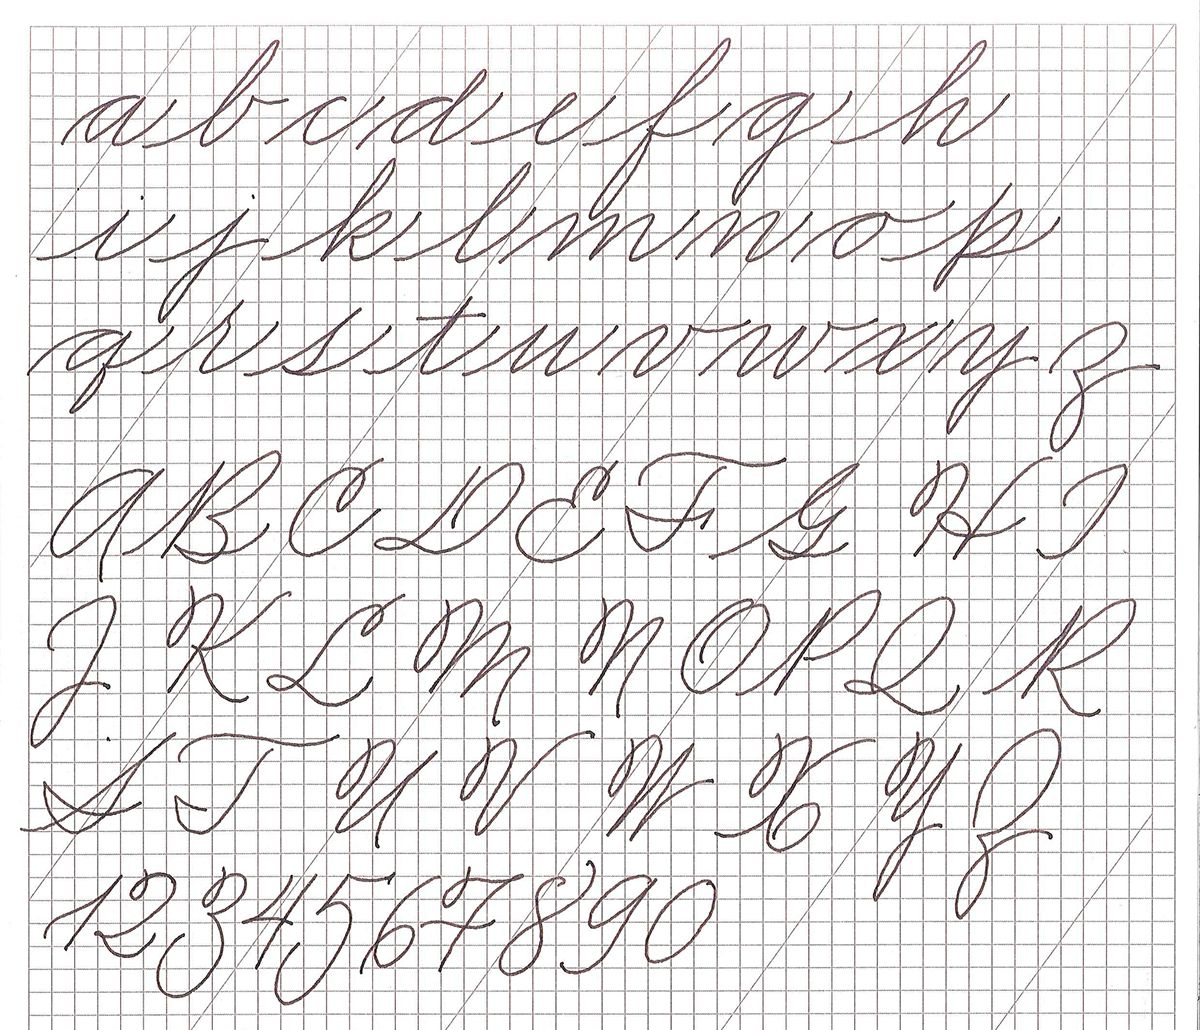 American Cursive Handwriting On Behance